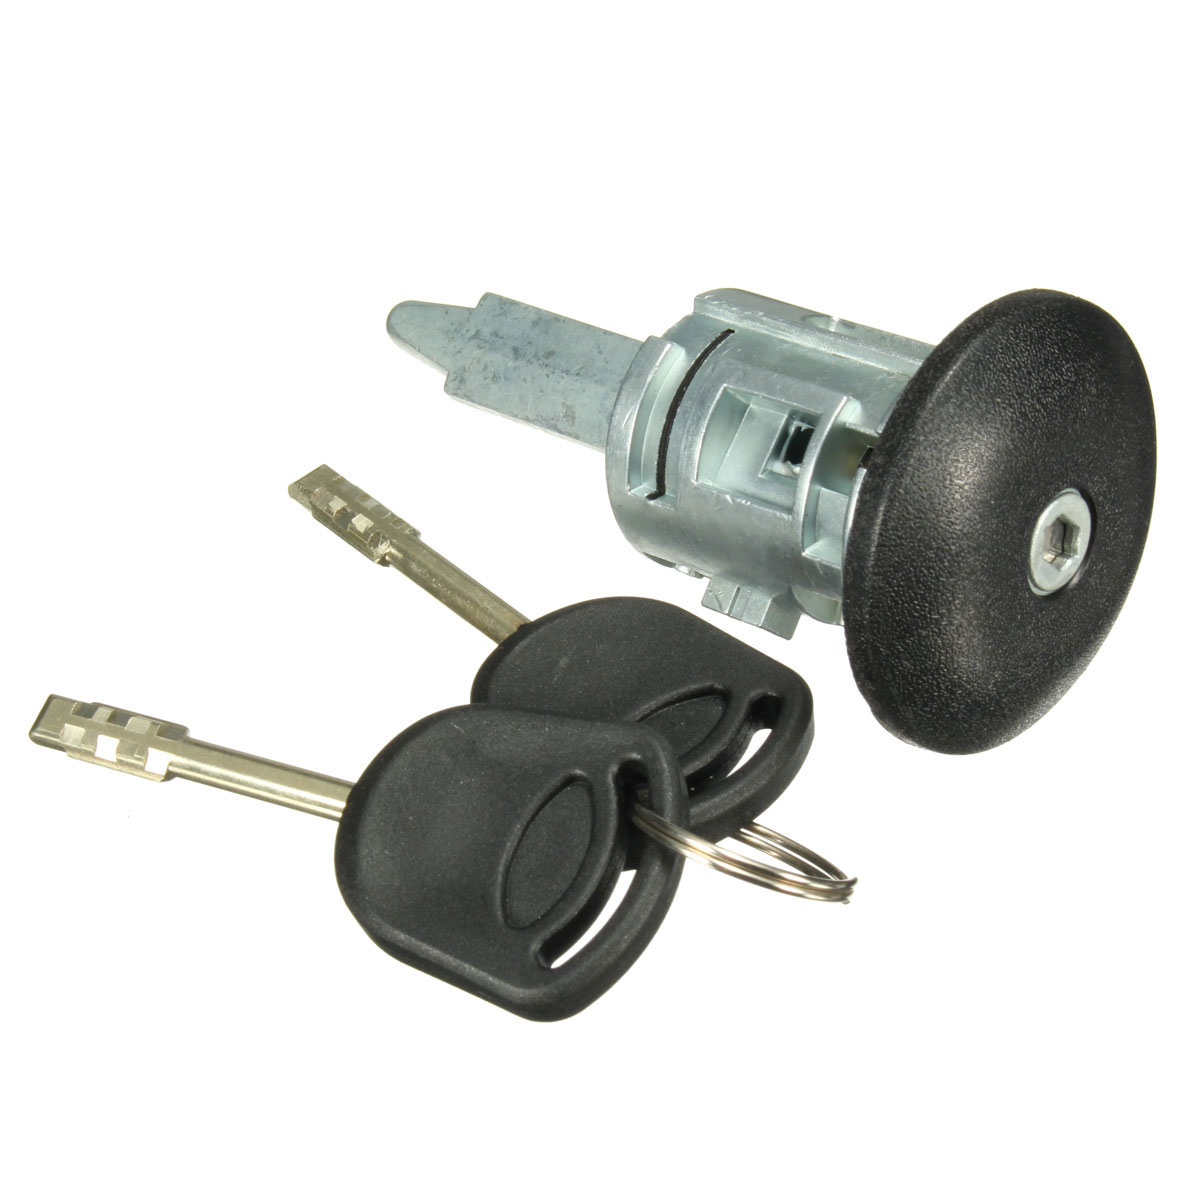 Front Right Driver Side Door lock Barrel with 2 keys For Ford Transit MK6 2000-2006